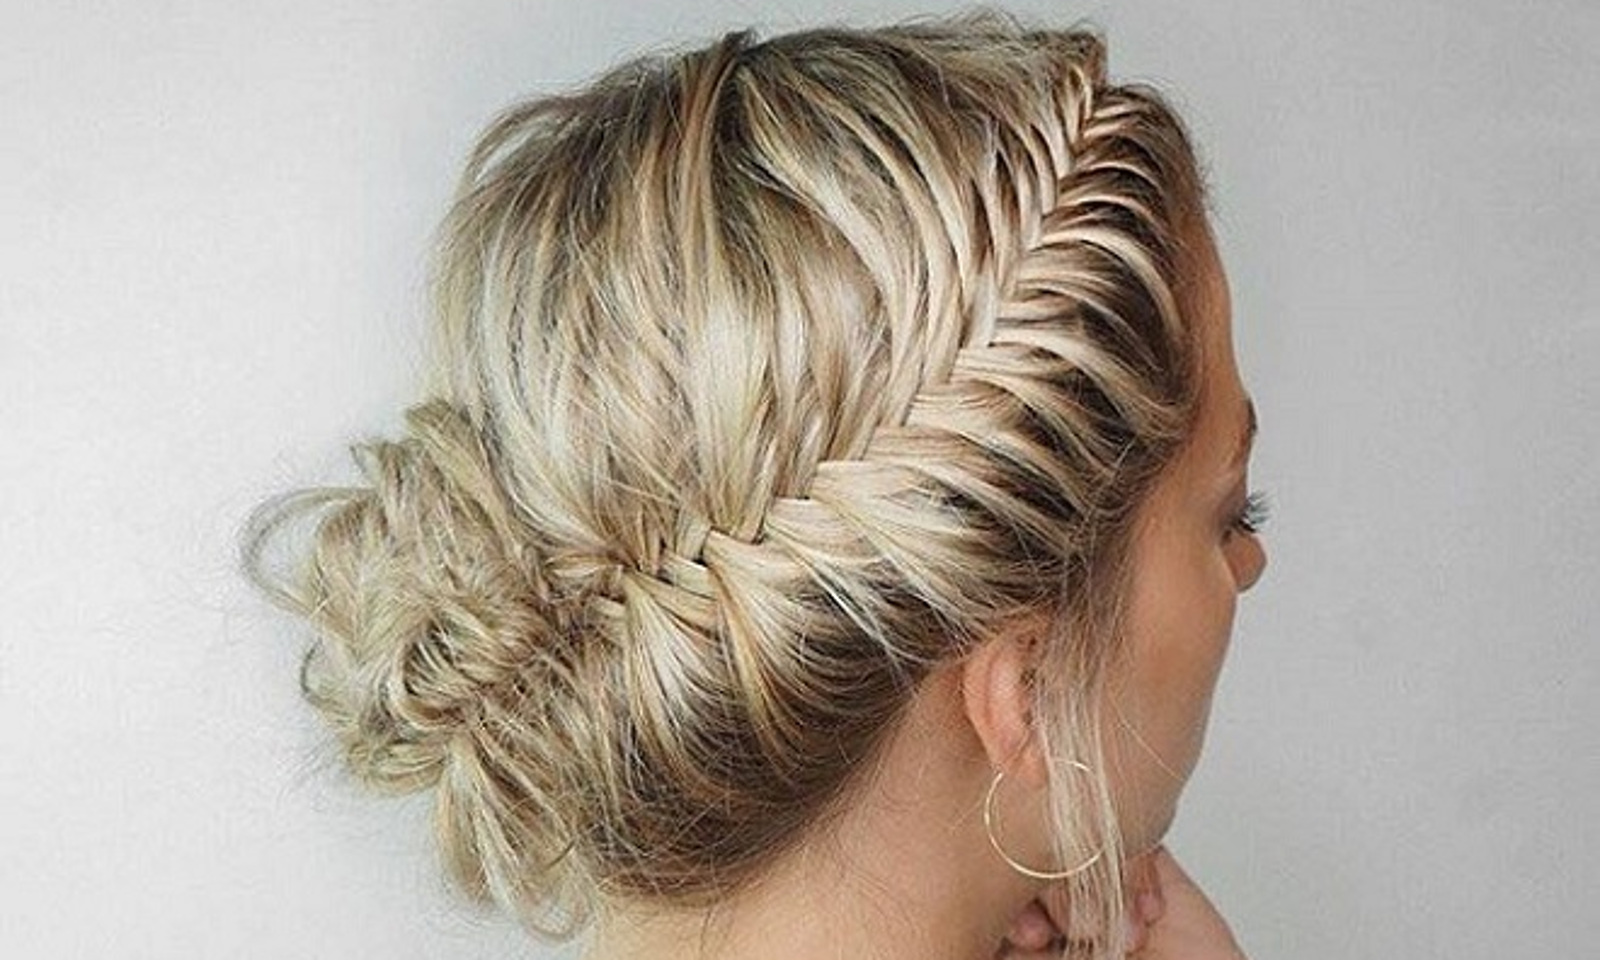 how to fish plait hair